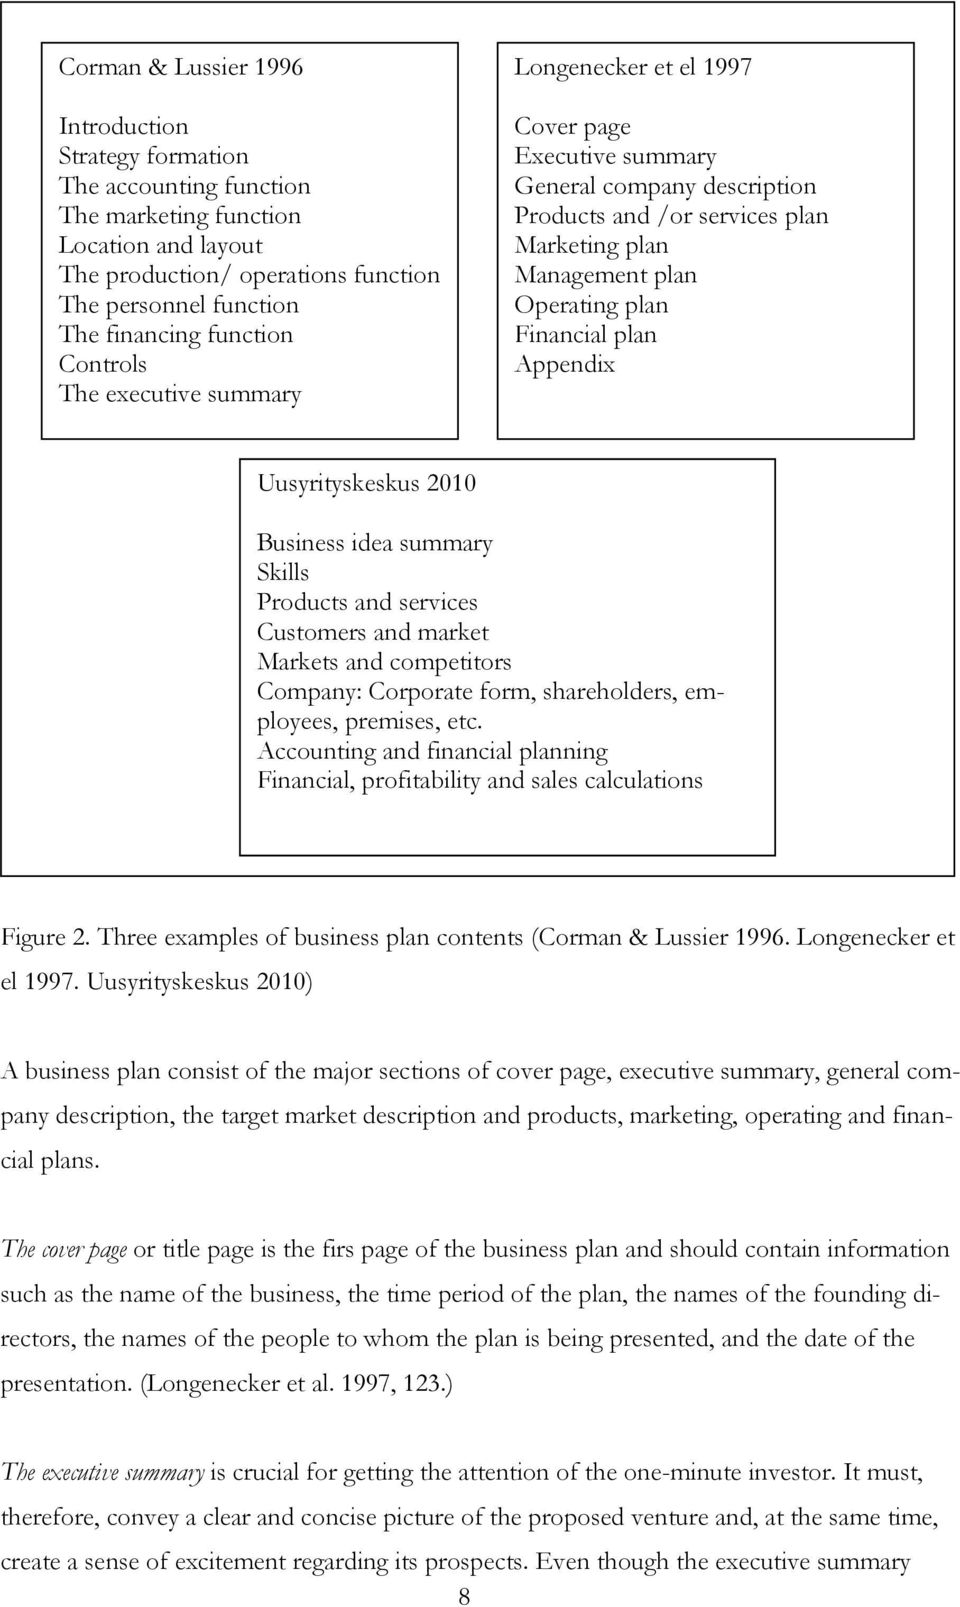 Dental business plan pdf